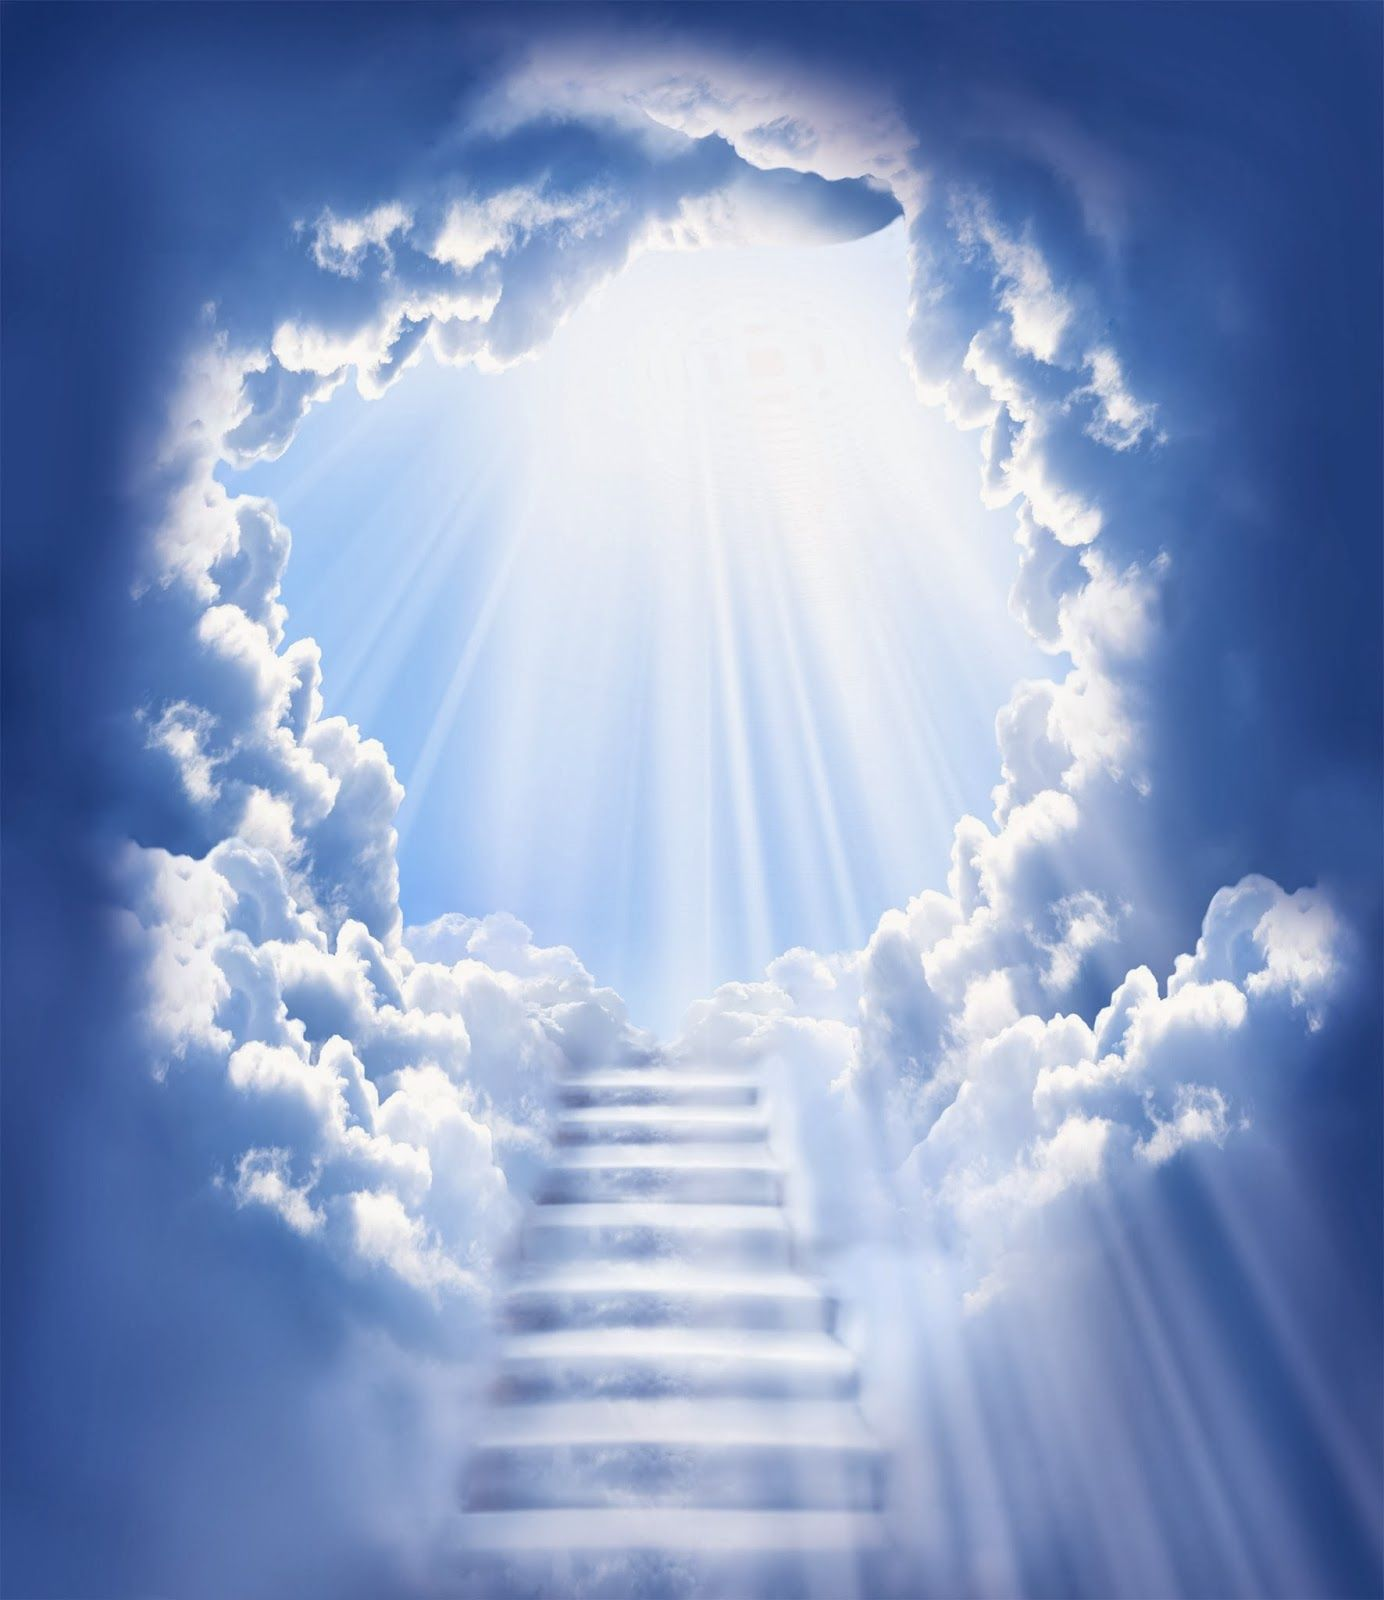 Animated Stairway To Heaven gif | Stairway to Heaven ...